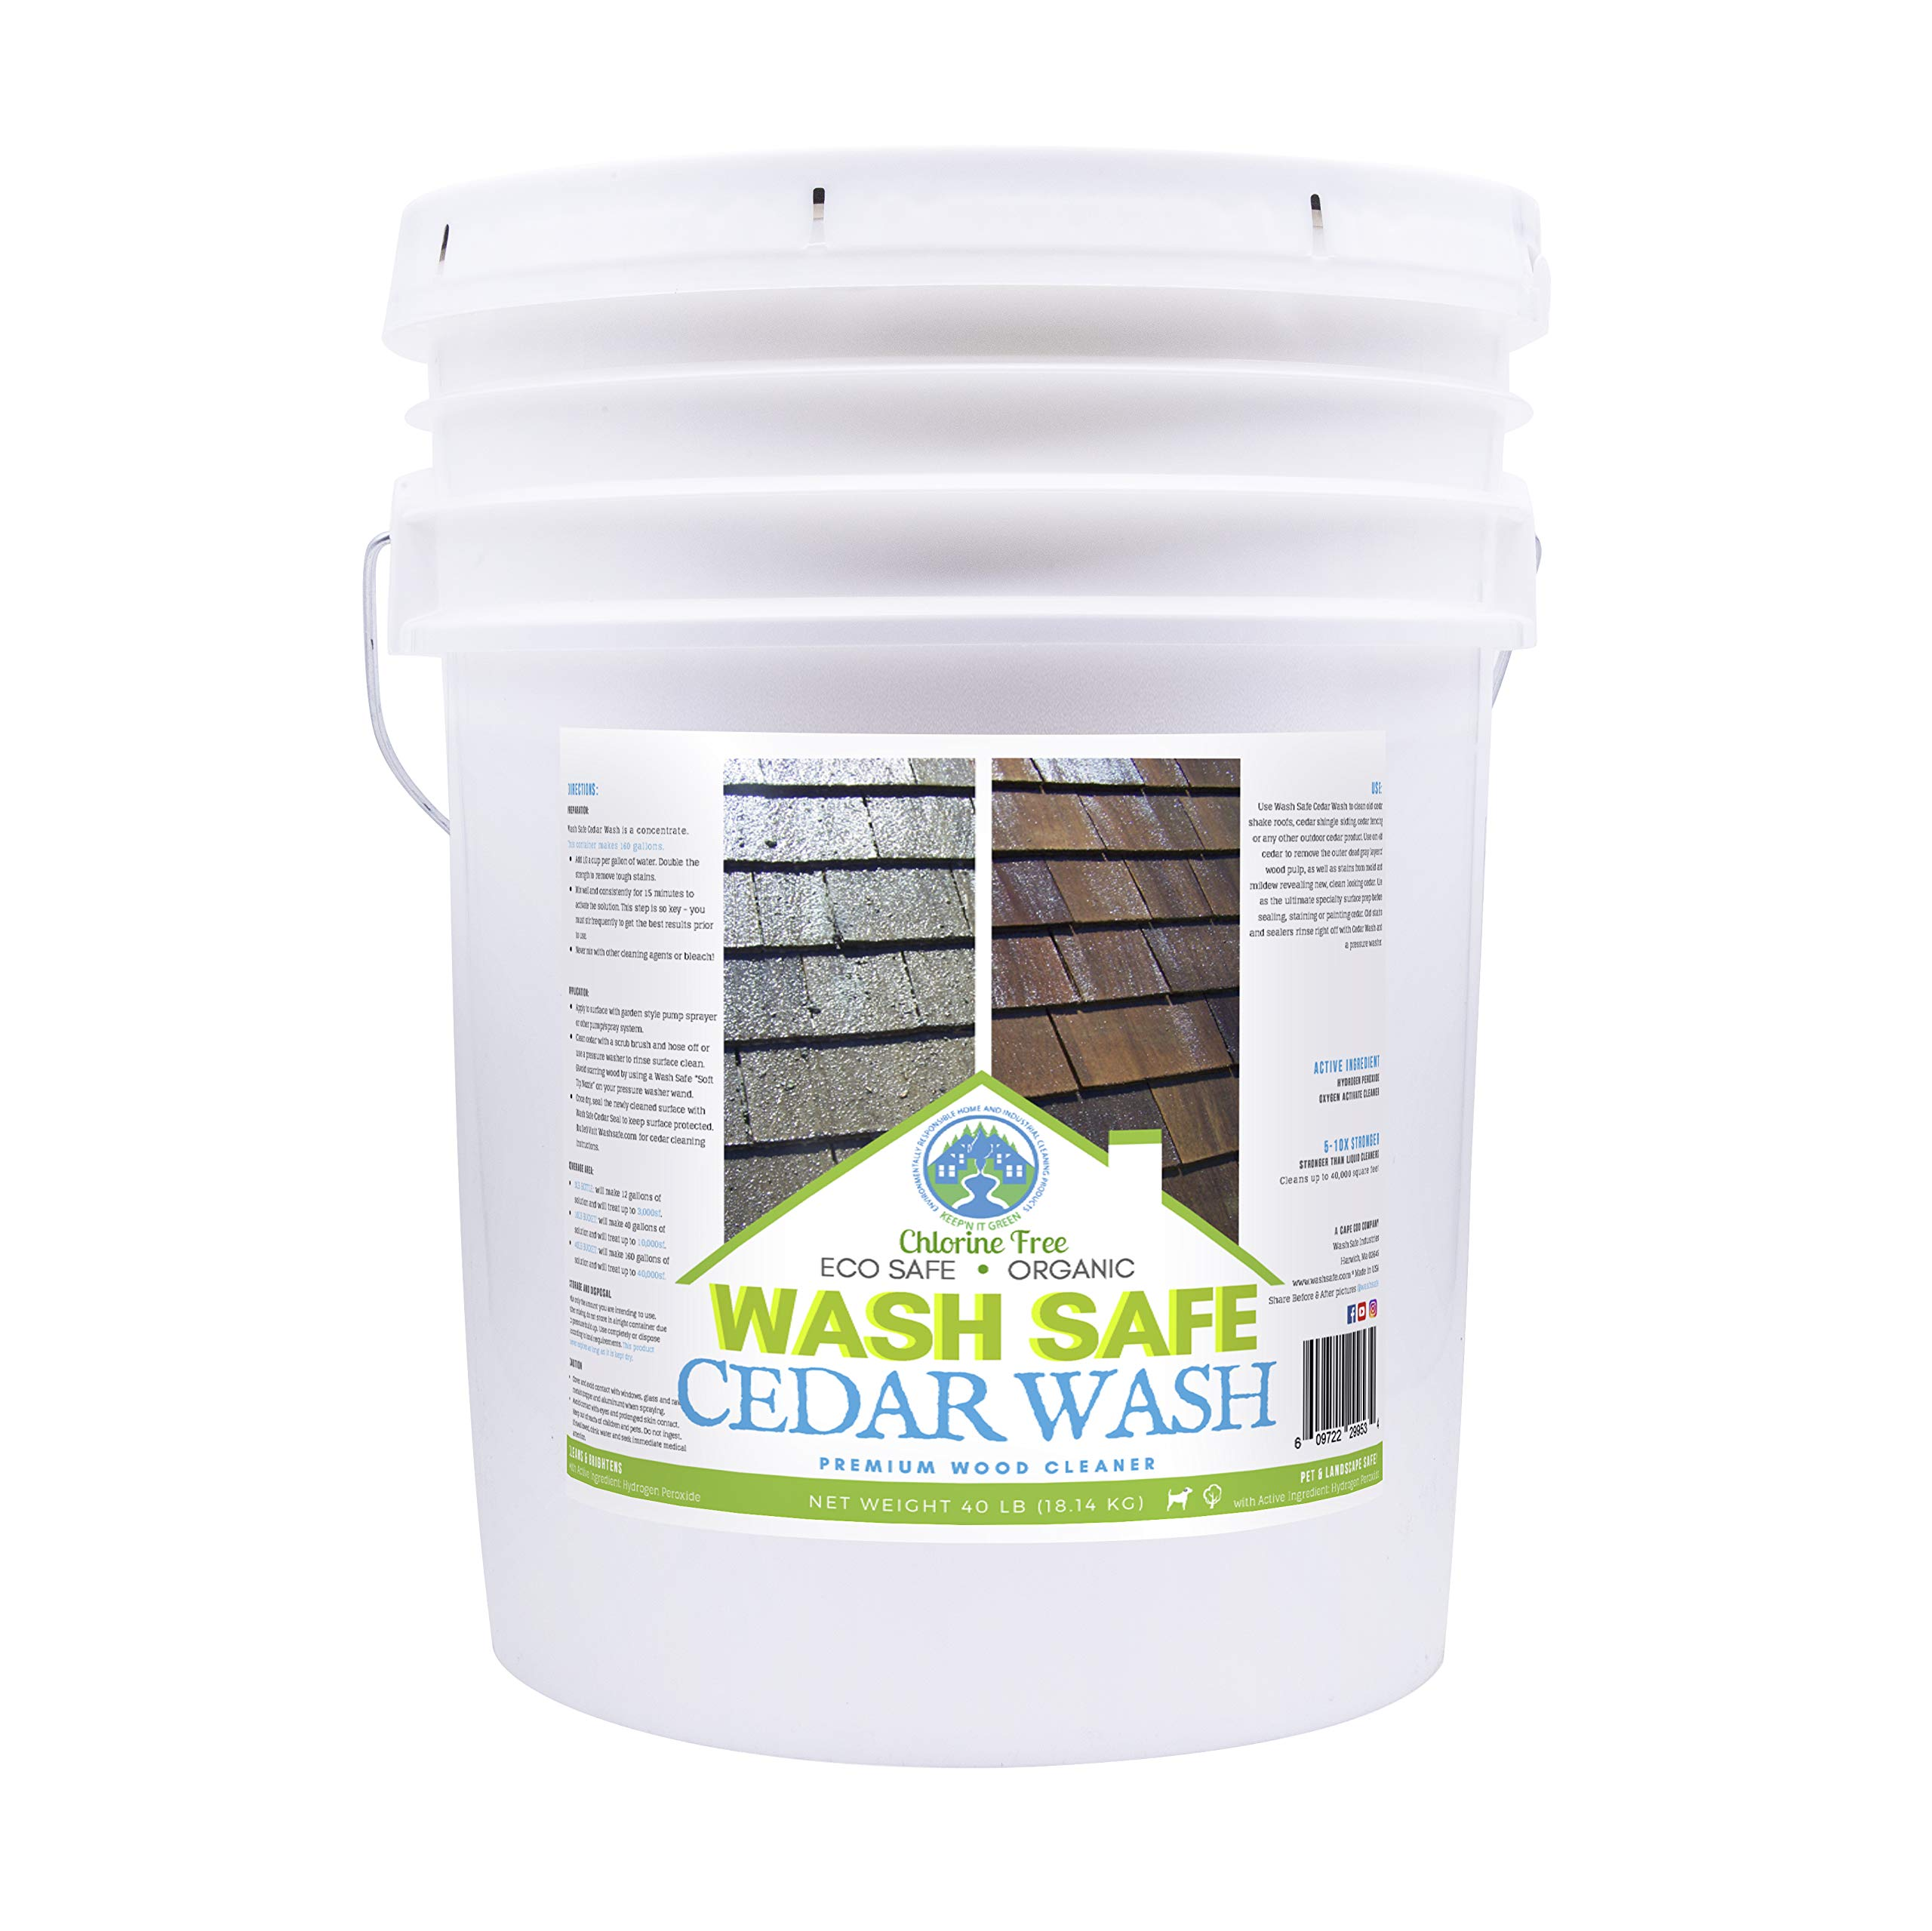 Wash Safe Industries CEDAR WASH Eco-Safe and Organic Wood Cleaner, 40 lb Container